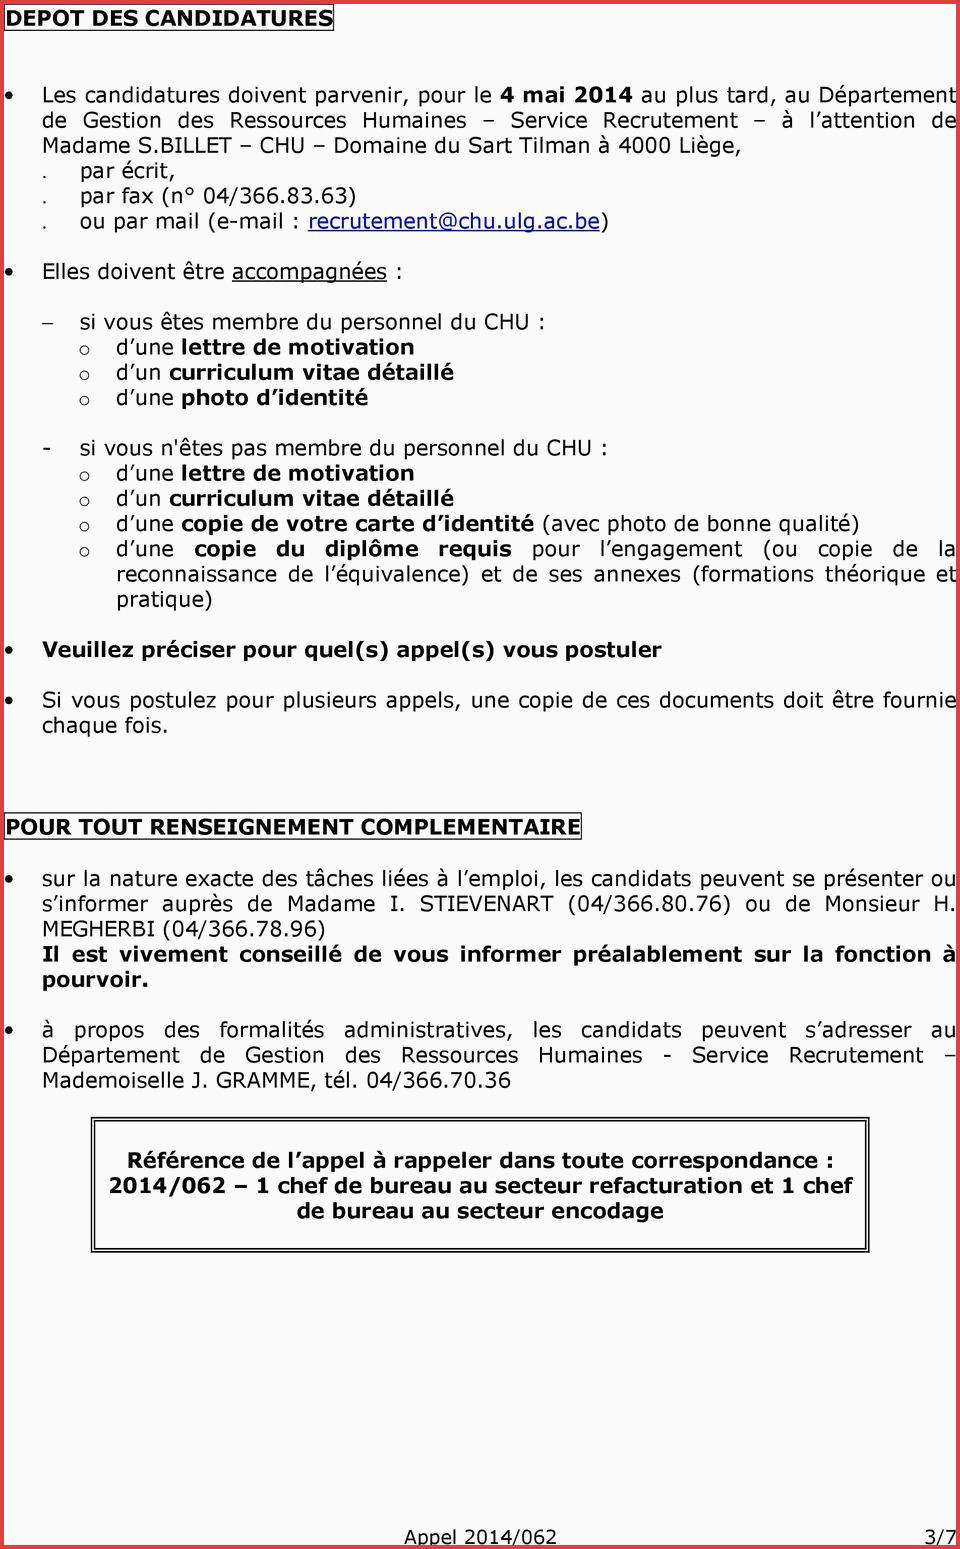 Exemple Lettre De Motivation assistante Maternelle Pole Emploi